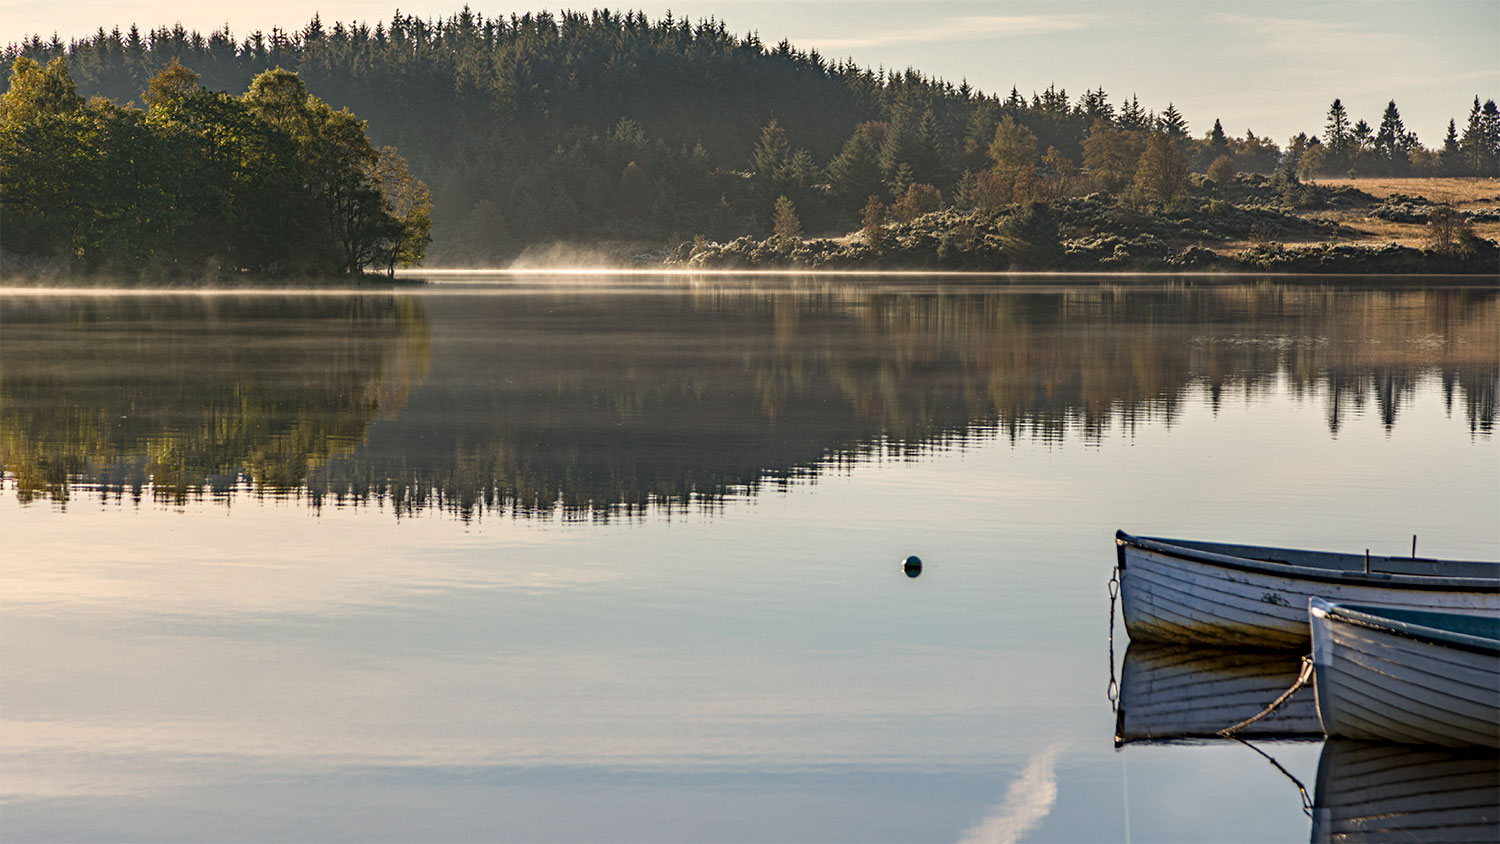 IMAGE: http://www.capnfishy.co.uk/wp-content/uploads/2019/09/Trossachs20Sep19_1487-HDR.jpg